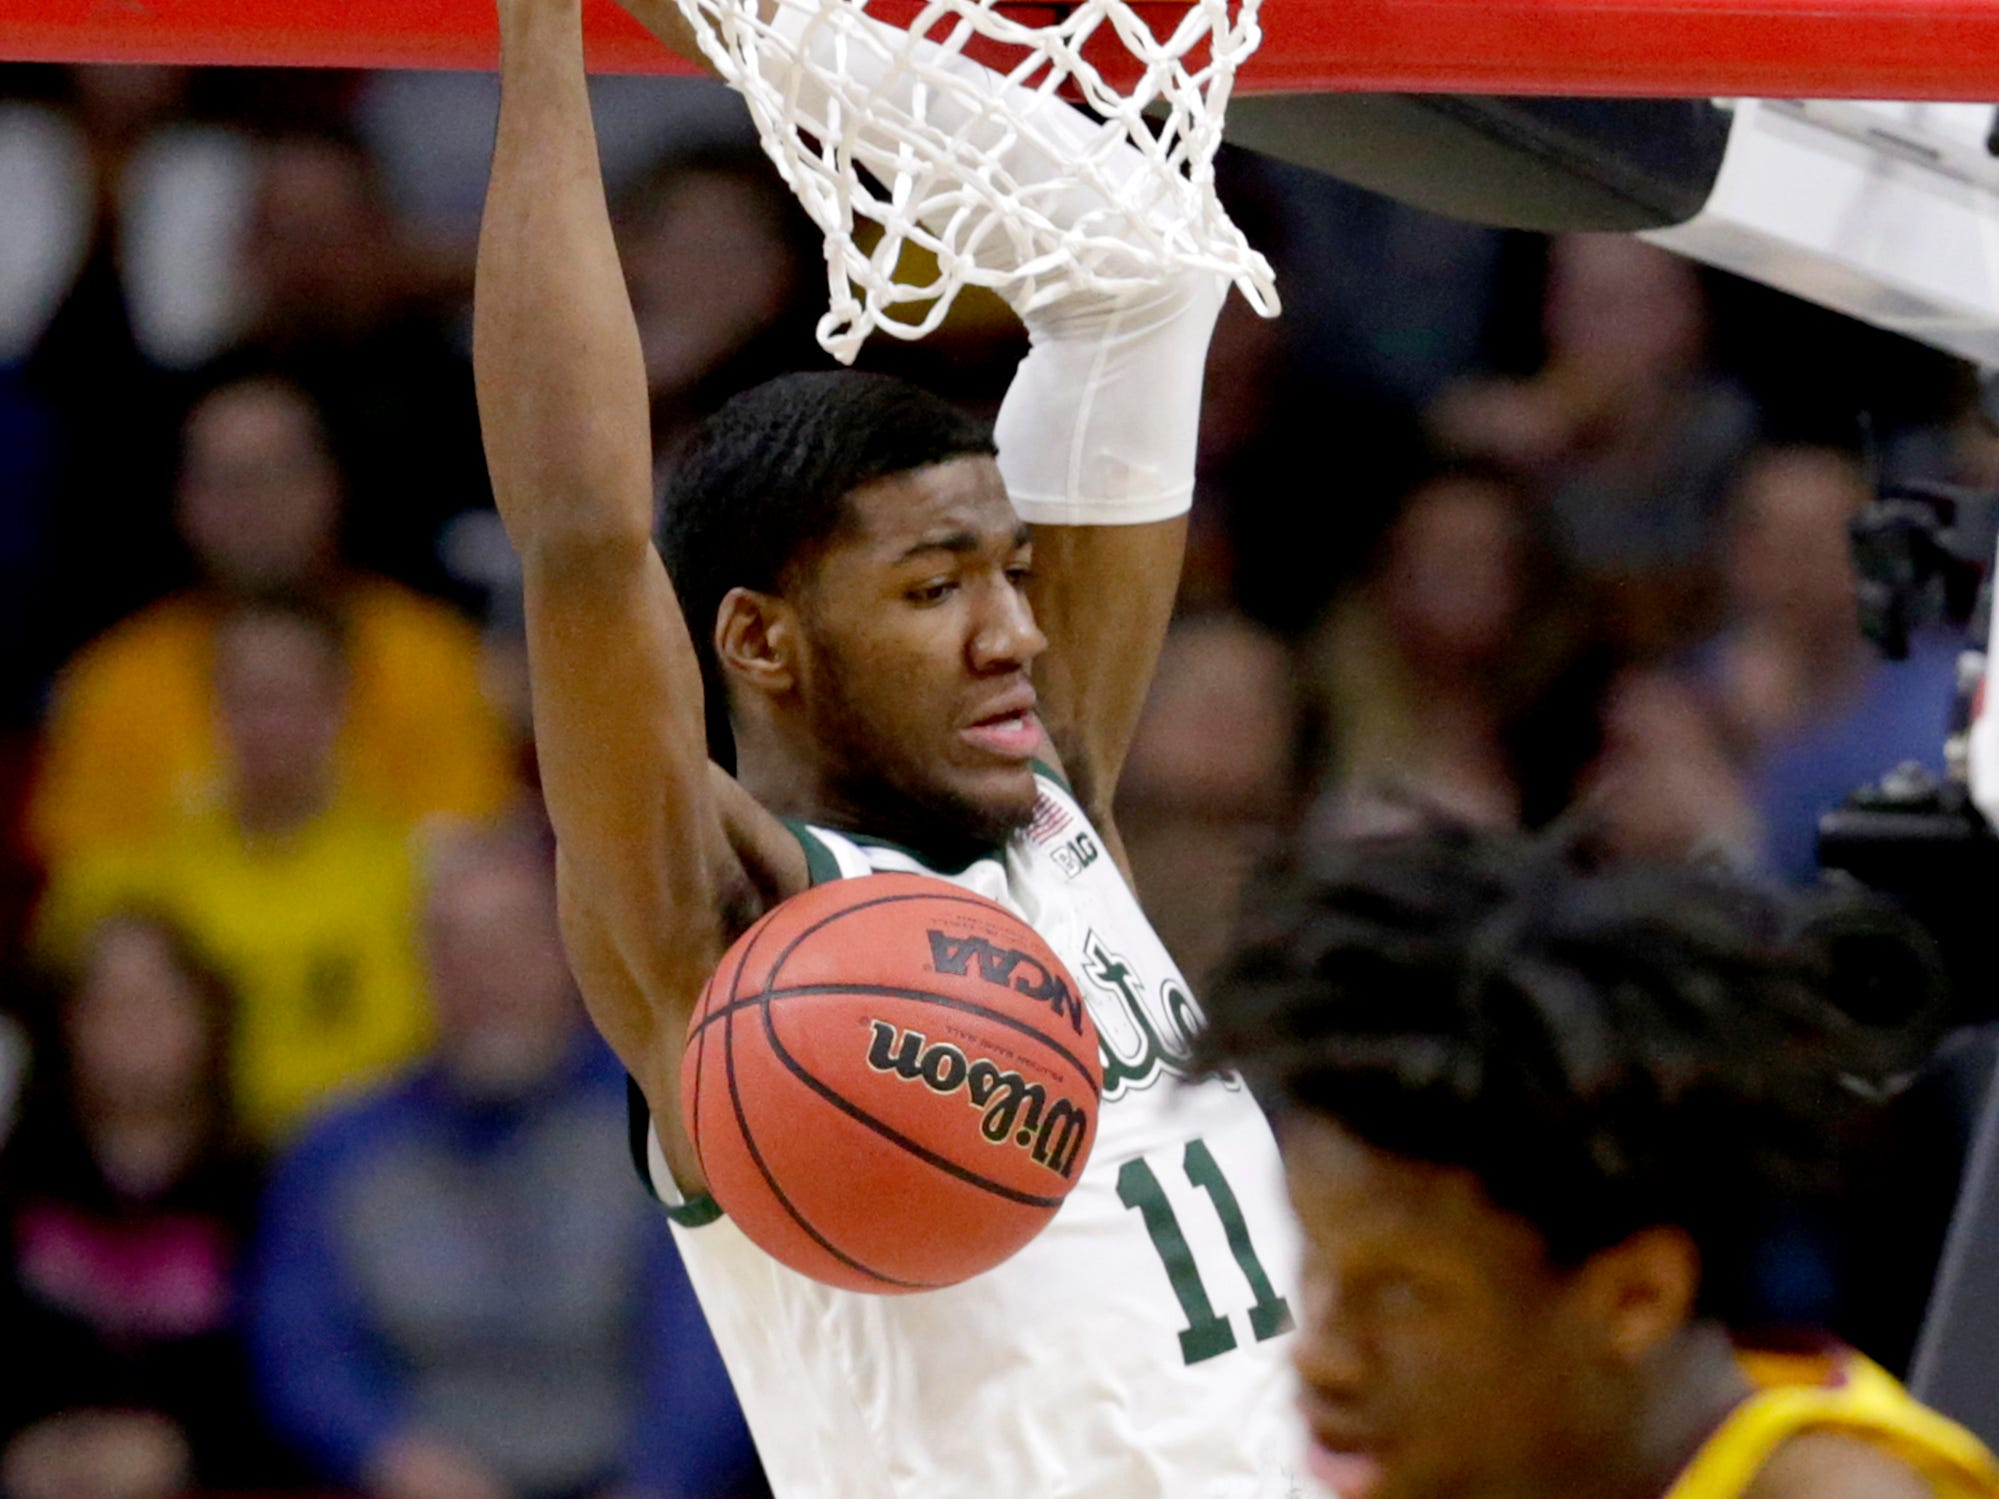 Michigan State's Aaron Henry (11) dunks against Minnesota during the first half of a second round NCAA tournament game in Des Moines, Iowa, Saturday, March 23, 2019.